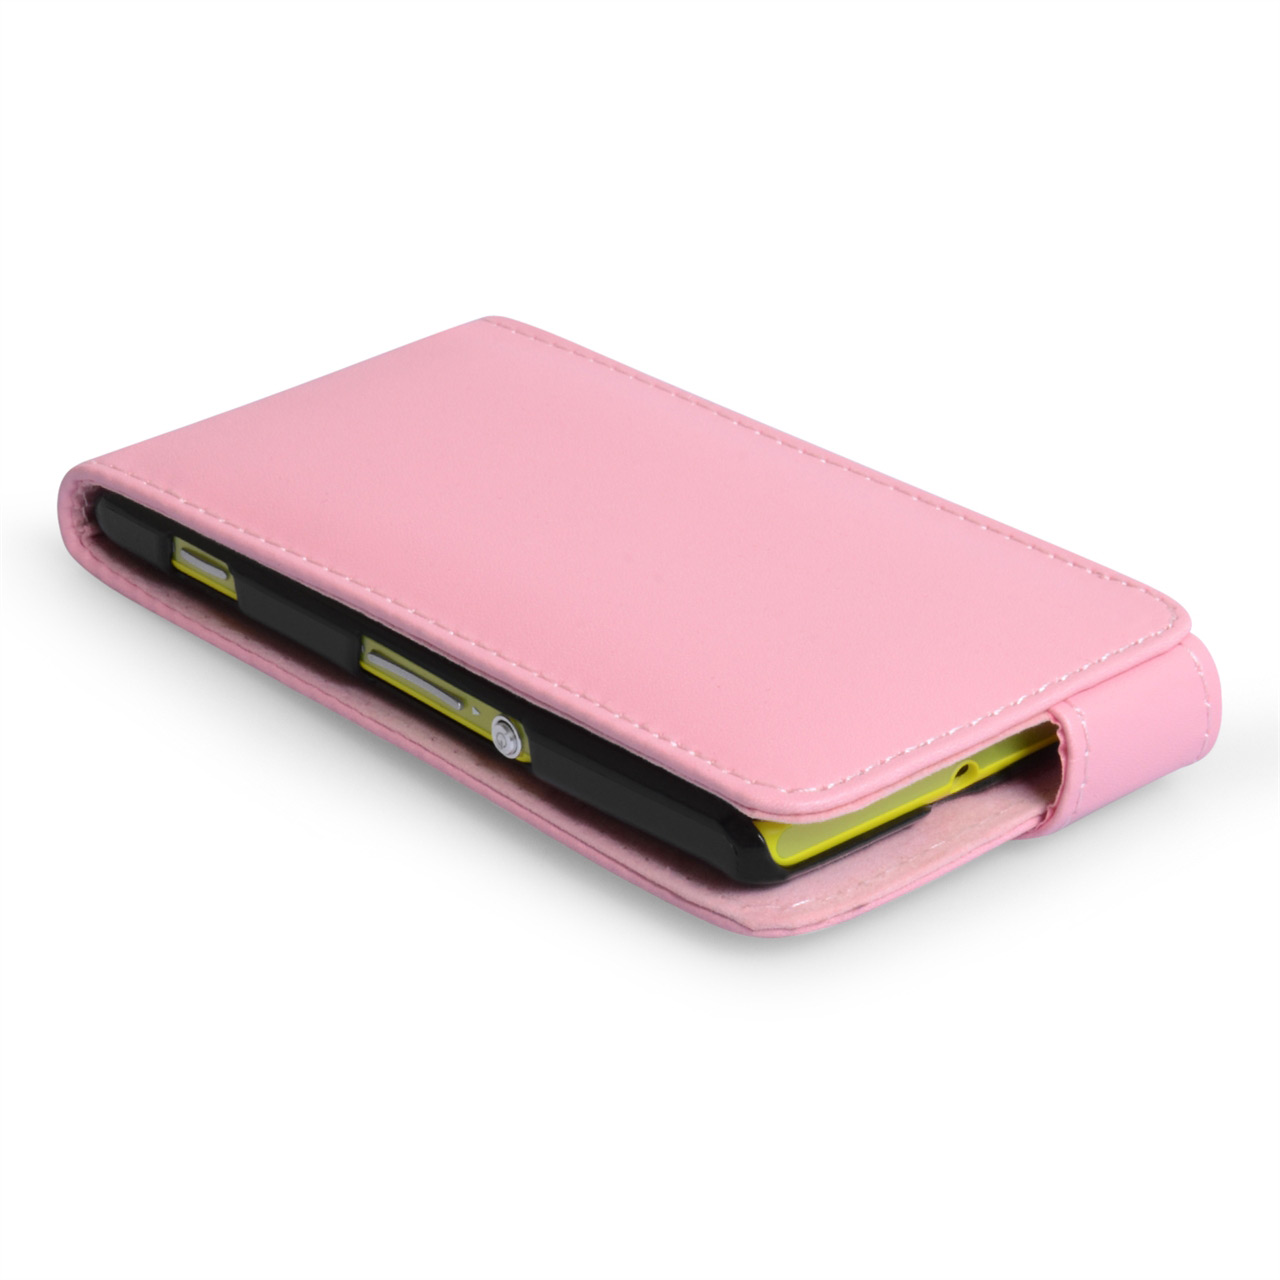 YouSave Accessories Sony Xperia M Baby Pink Leather Effect Flip Case